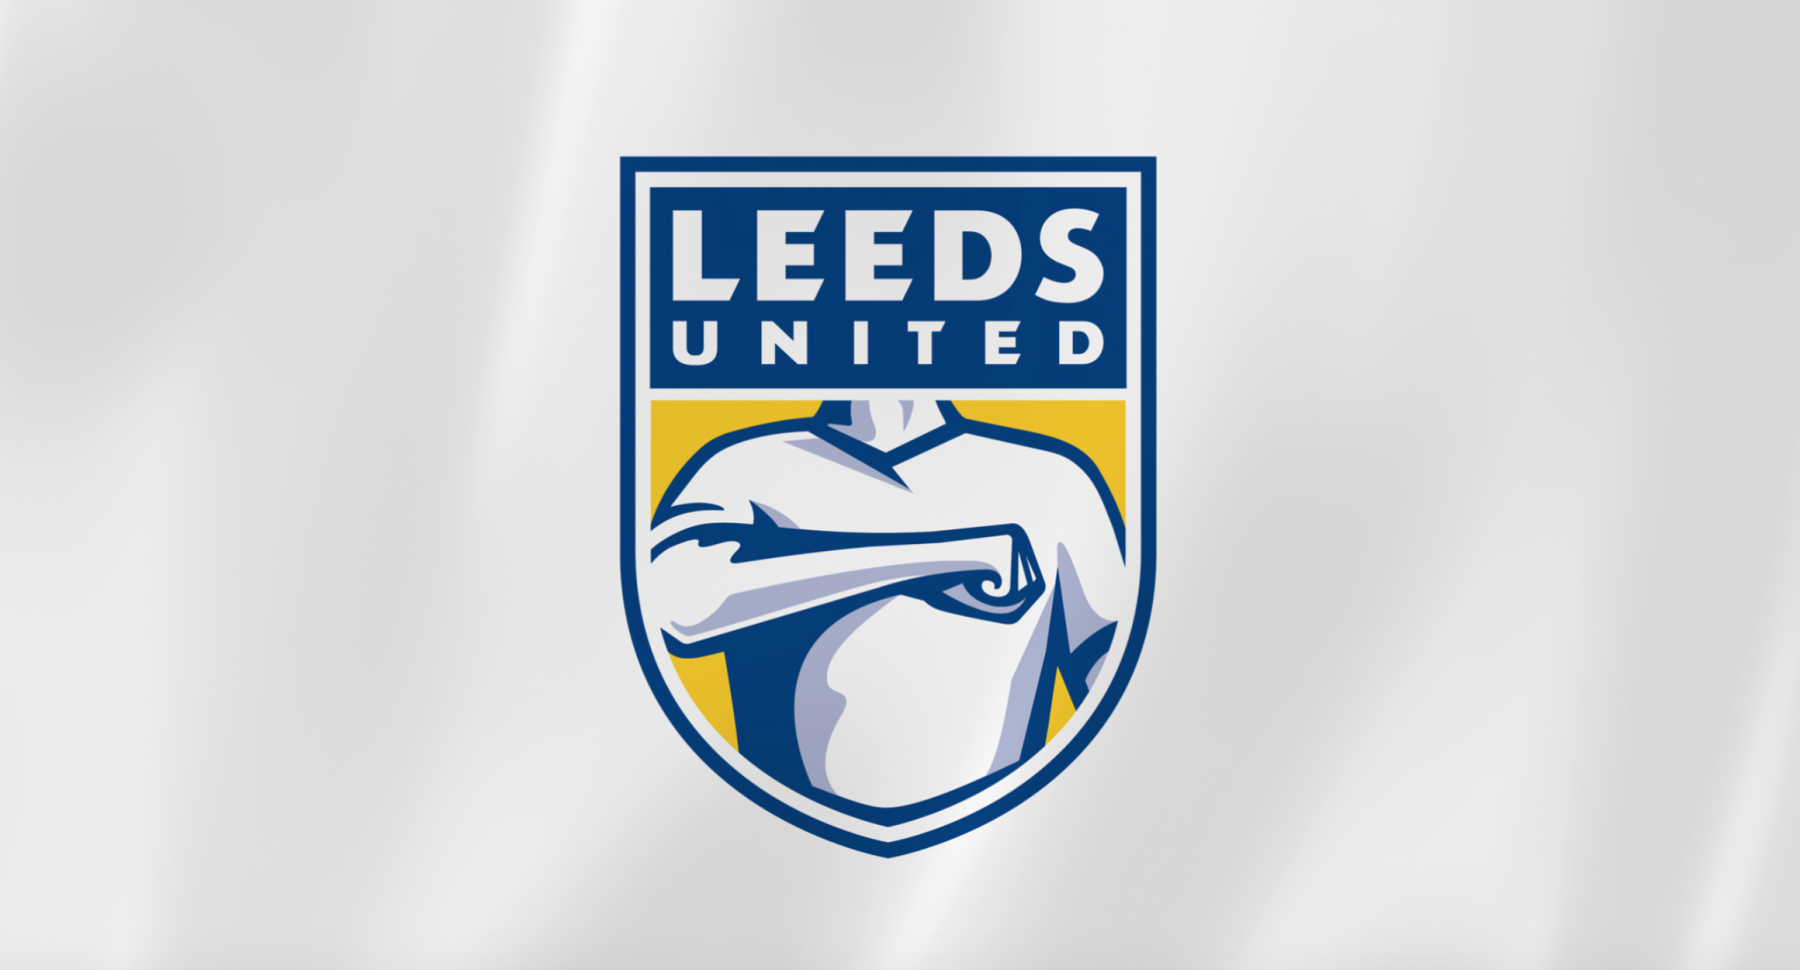 New Leeds United crest ridiculed on Twitter and Facebook